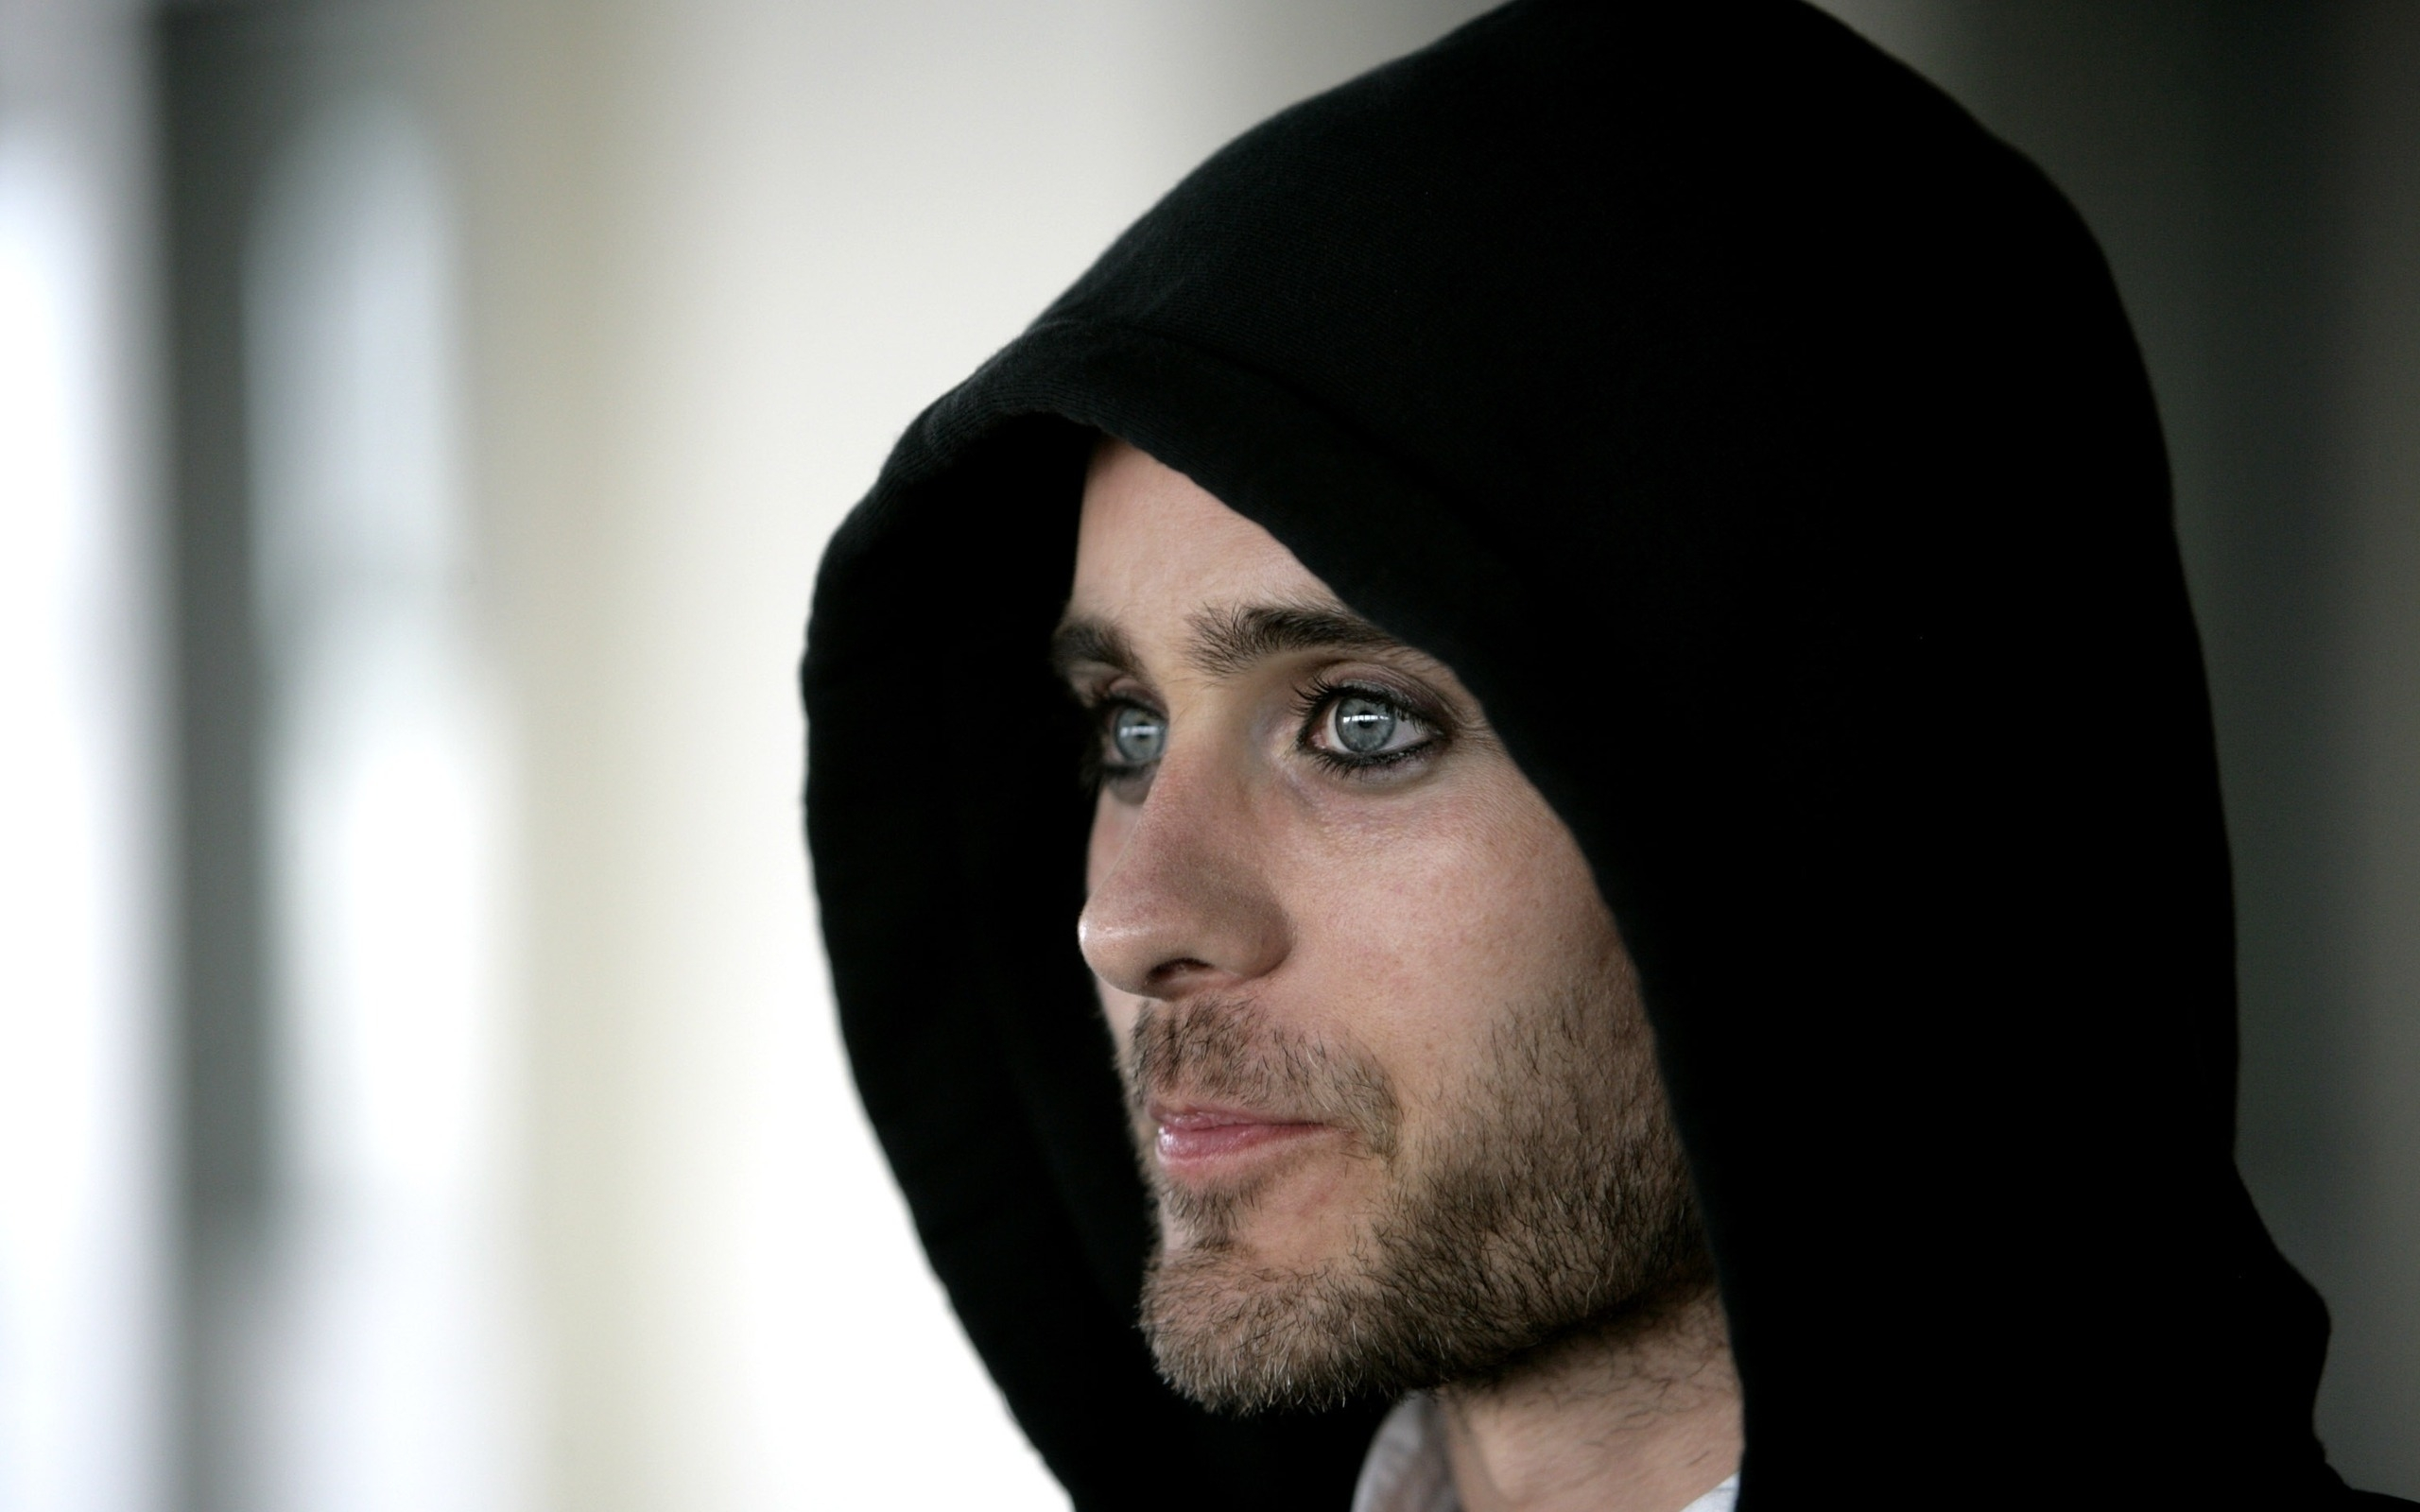 Jared leto images jared leto hd wallpaper and background photos - 11 Hd Jared Leto Wallpapers